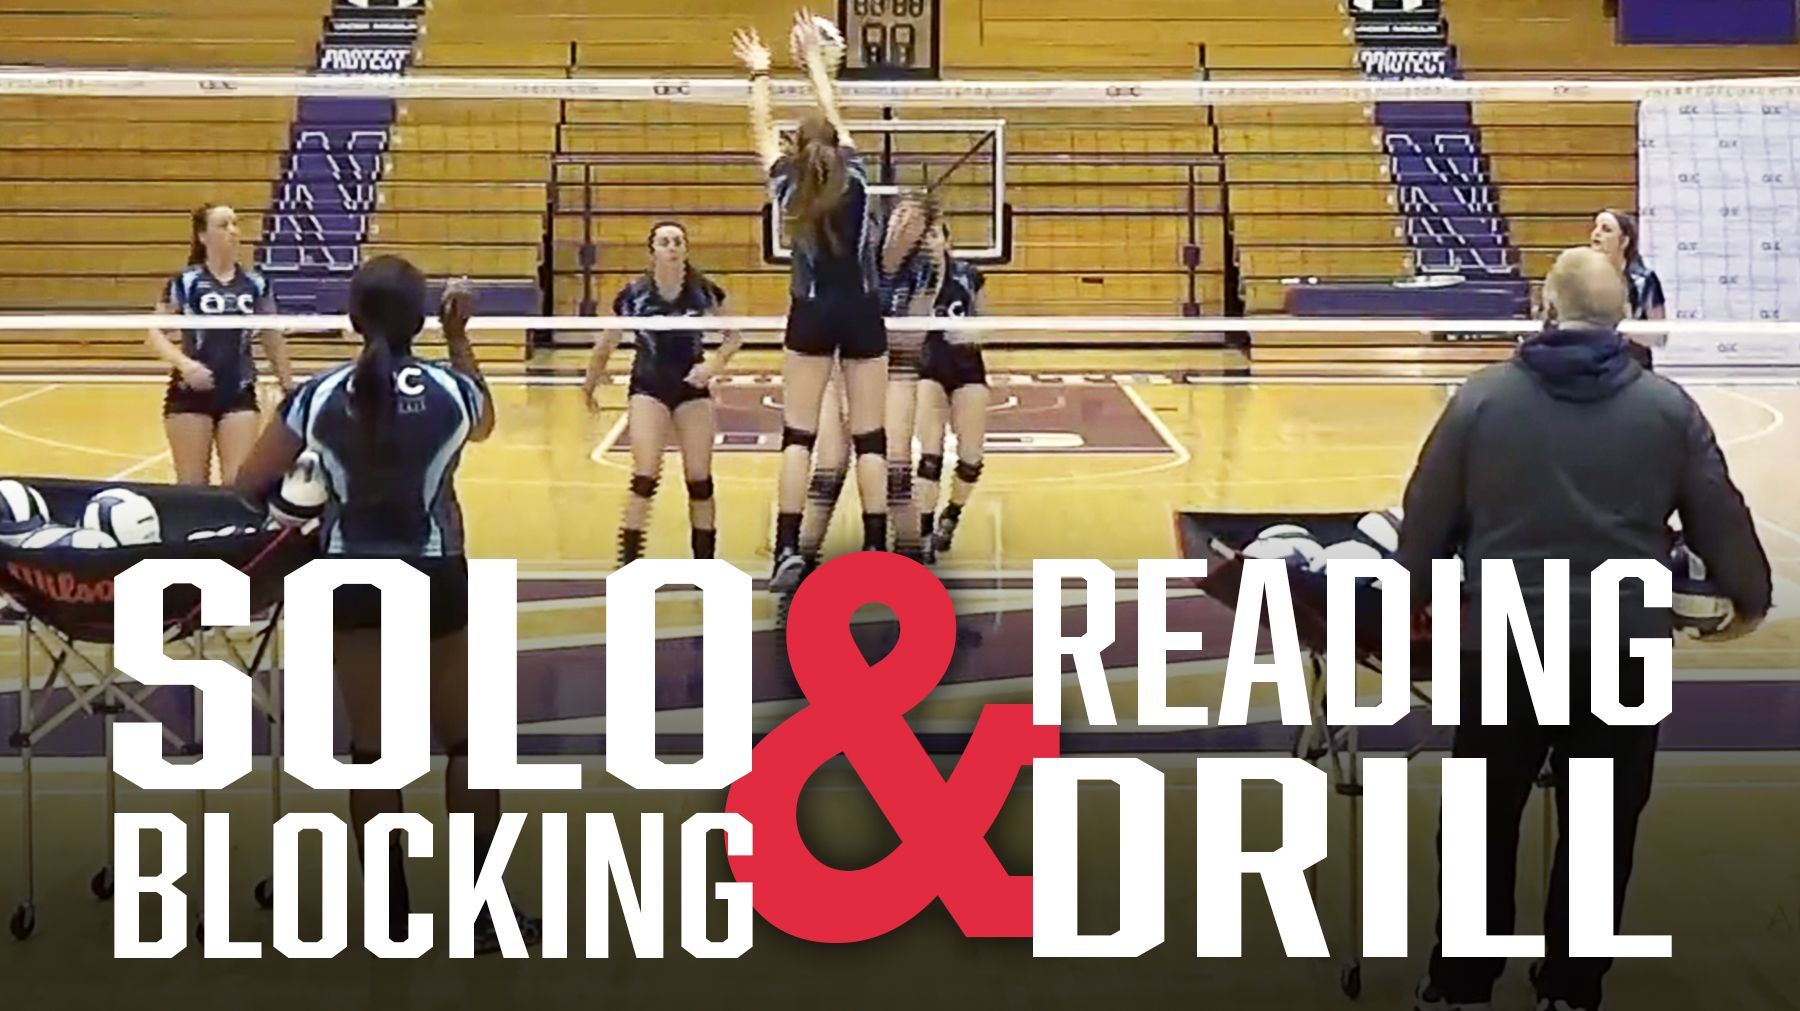 Russ Rose Solo Blocking And Reading Drill Coaching Volleyball Volleyball Practice Volleyball Skills